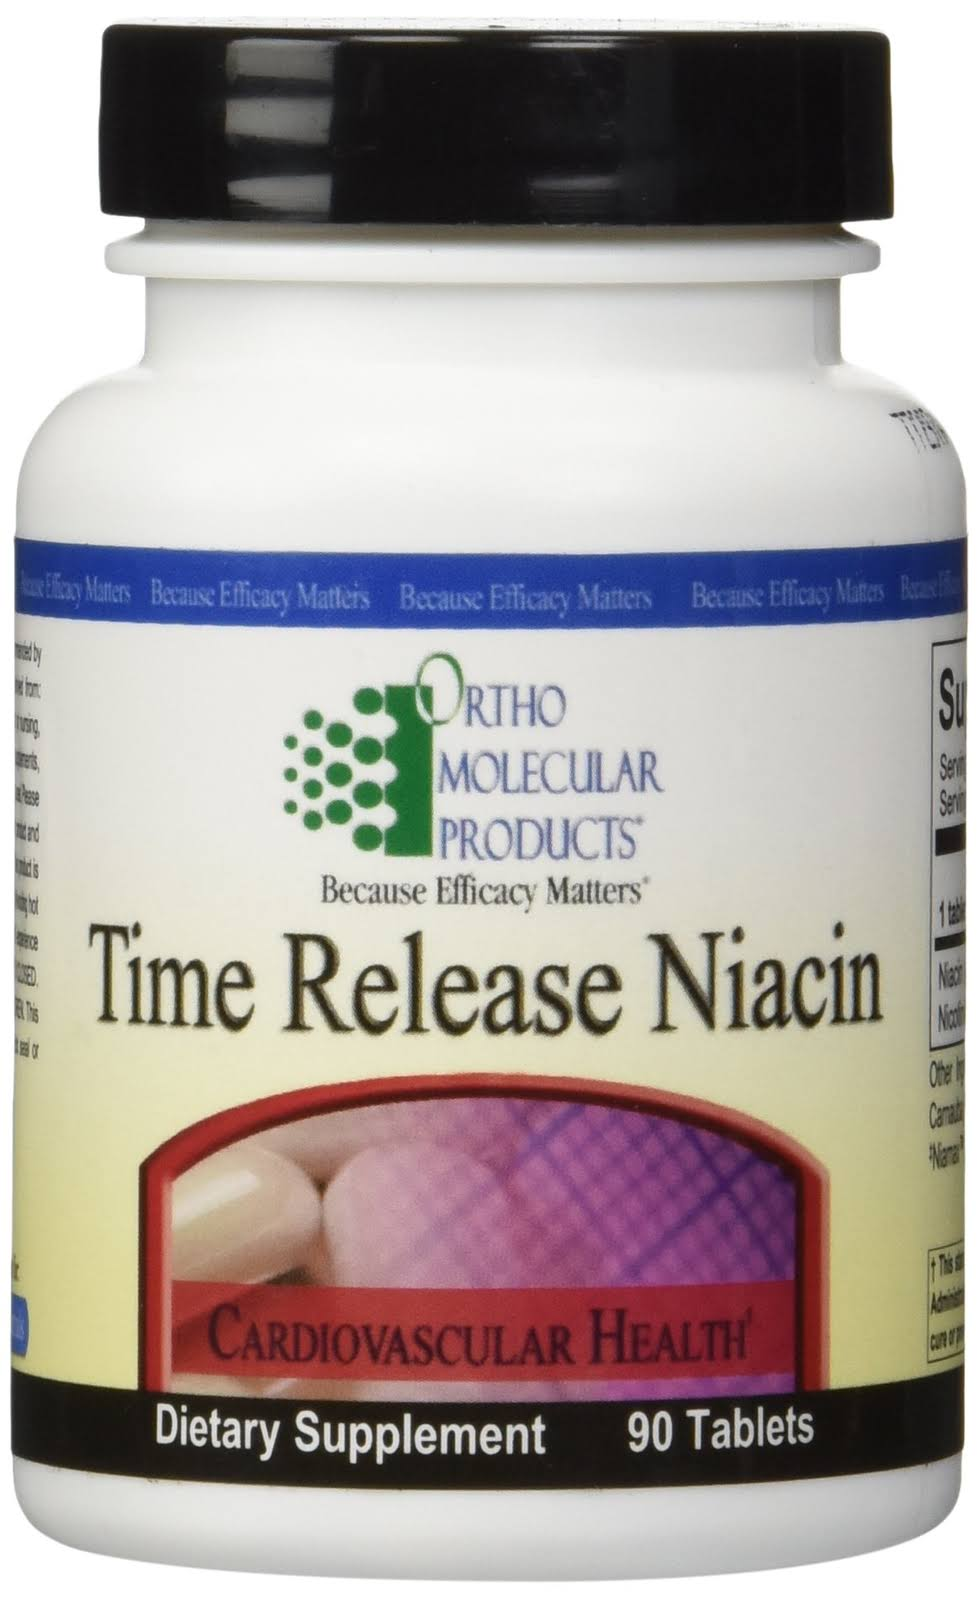 Ortho Molecular Time Release Niacin Dietary Supplement - 90ct